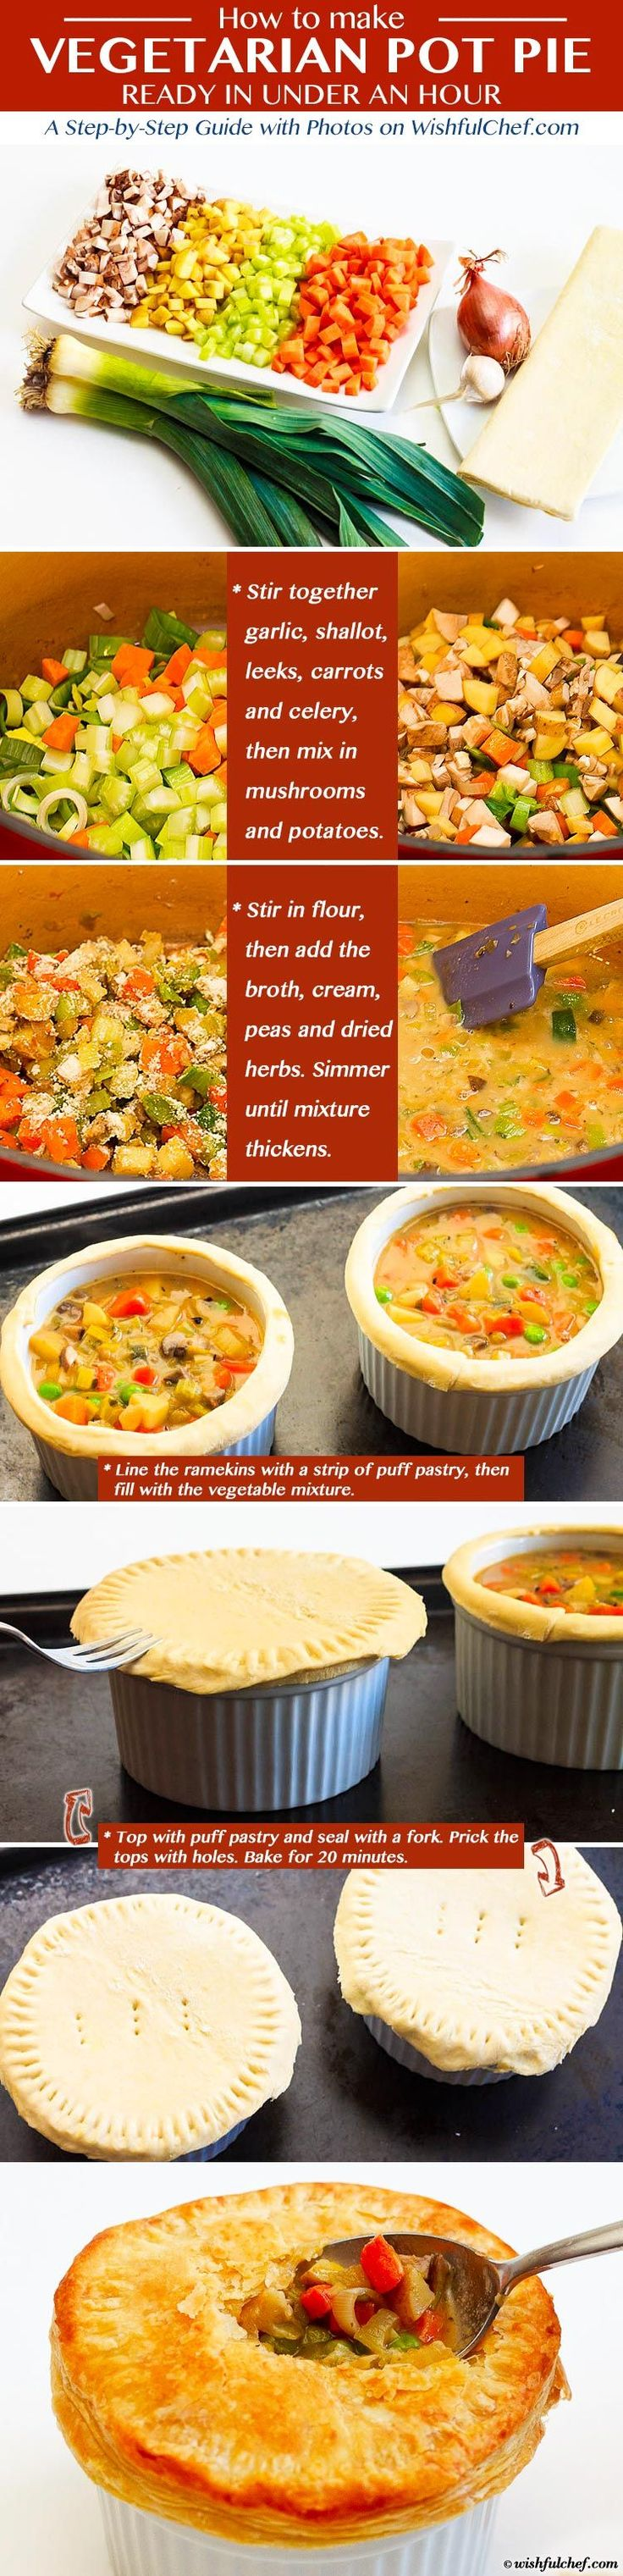 Vegetarian Pot Pie Recipe - Ready in Under an Hour // wishfulchef.com ...